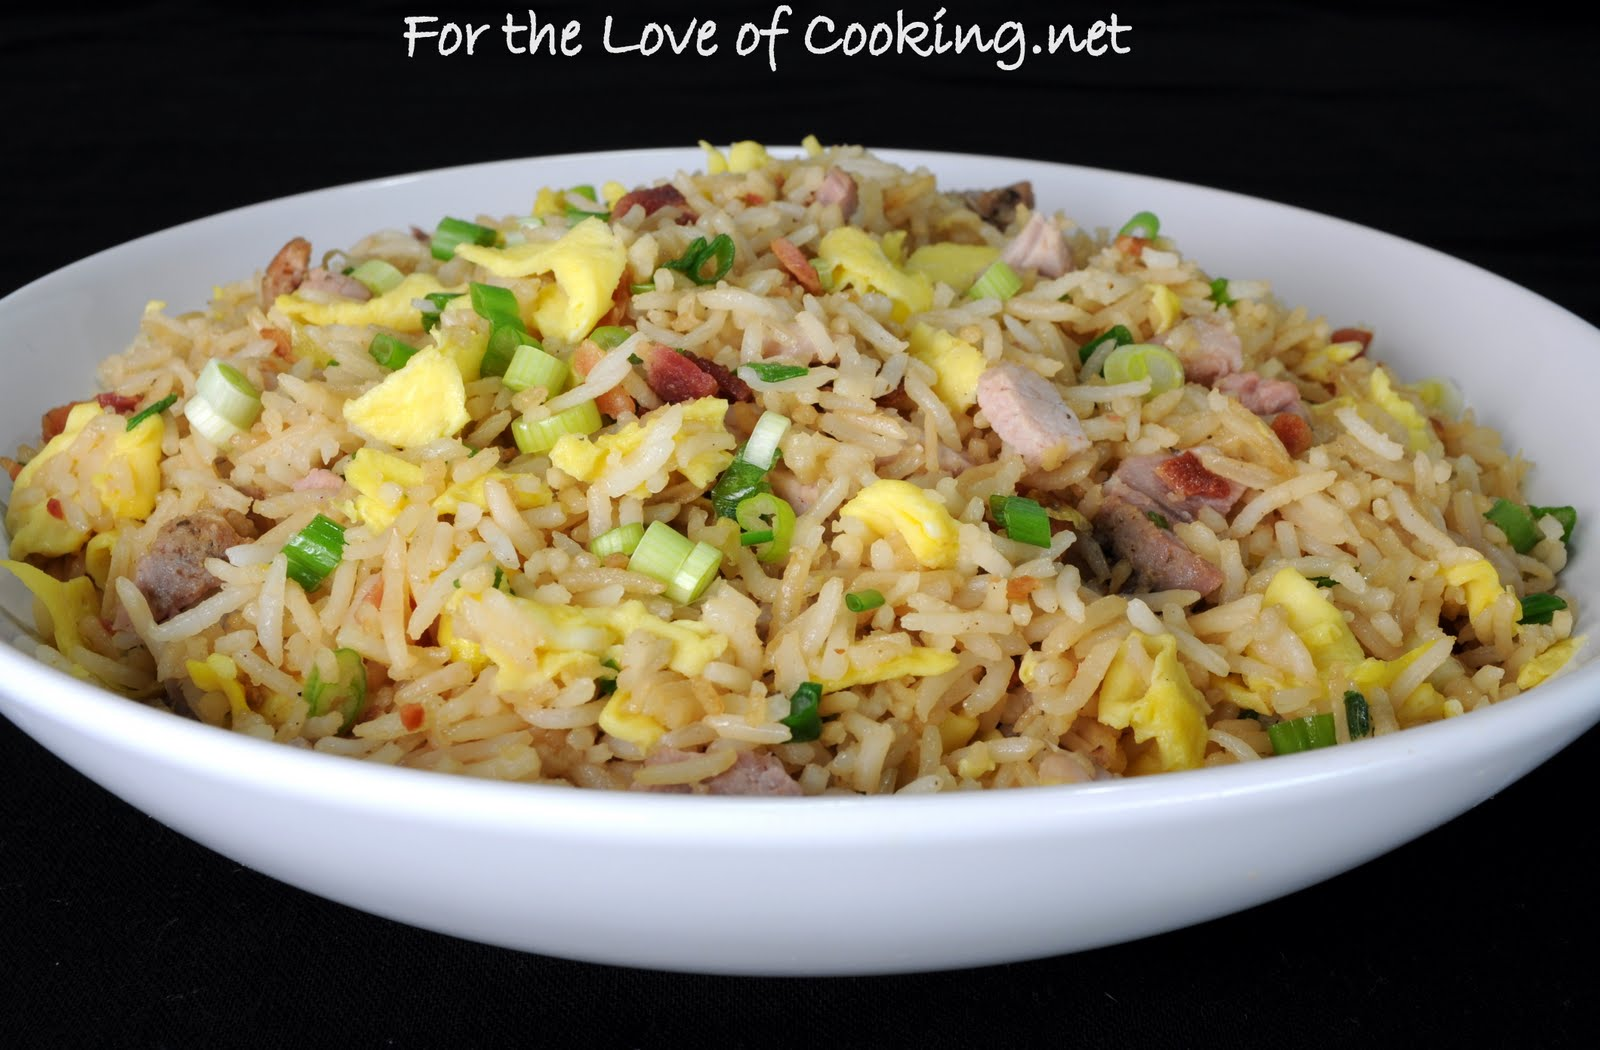 For the Love of Cooking: Pork Fried Rice